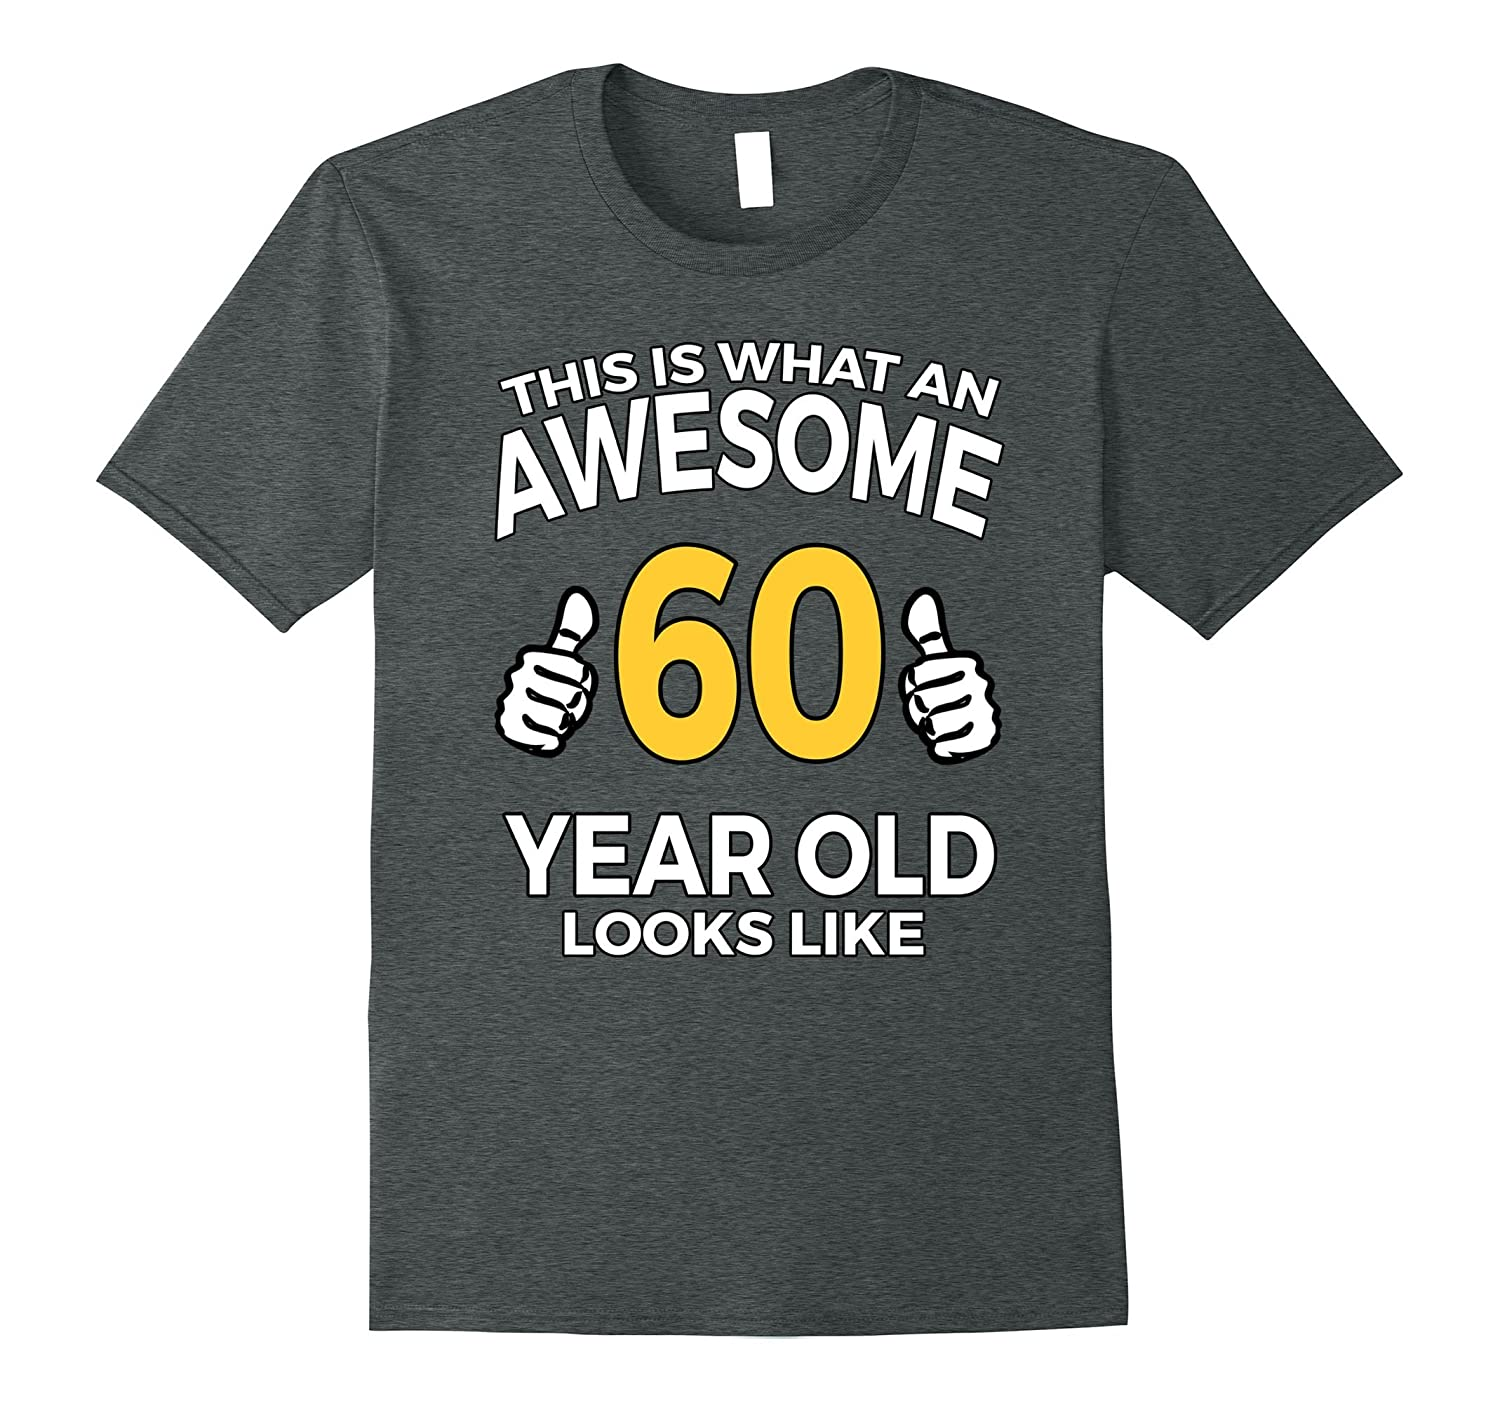 60th Birthday Gift Aged 60 Years T Shirt For Men Or Women TH